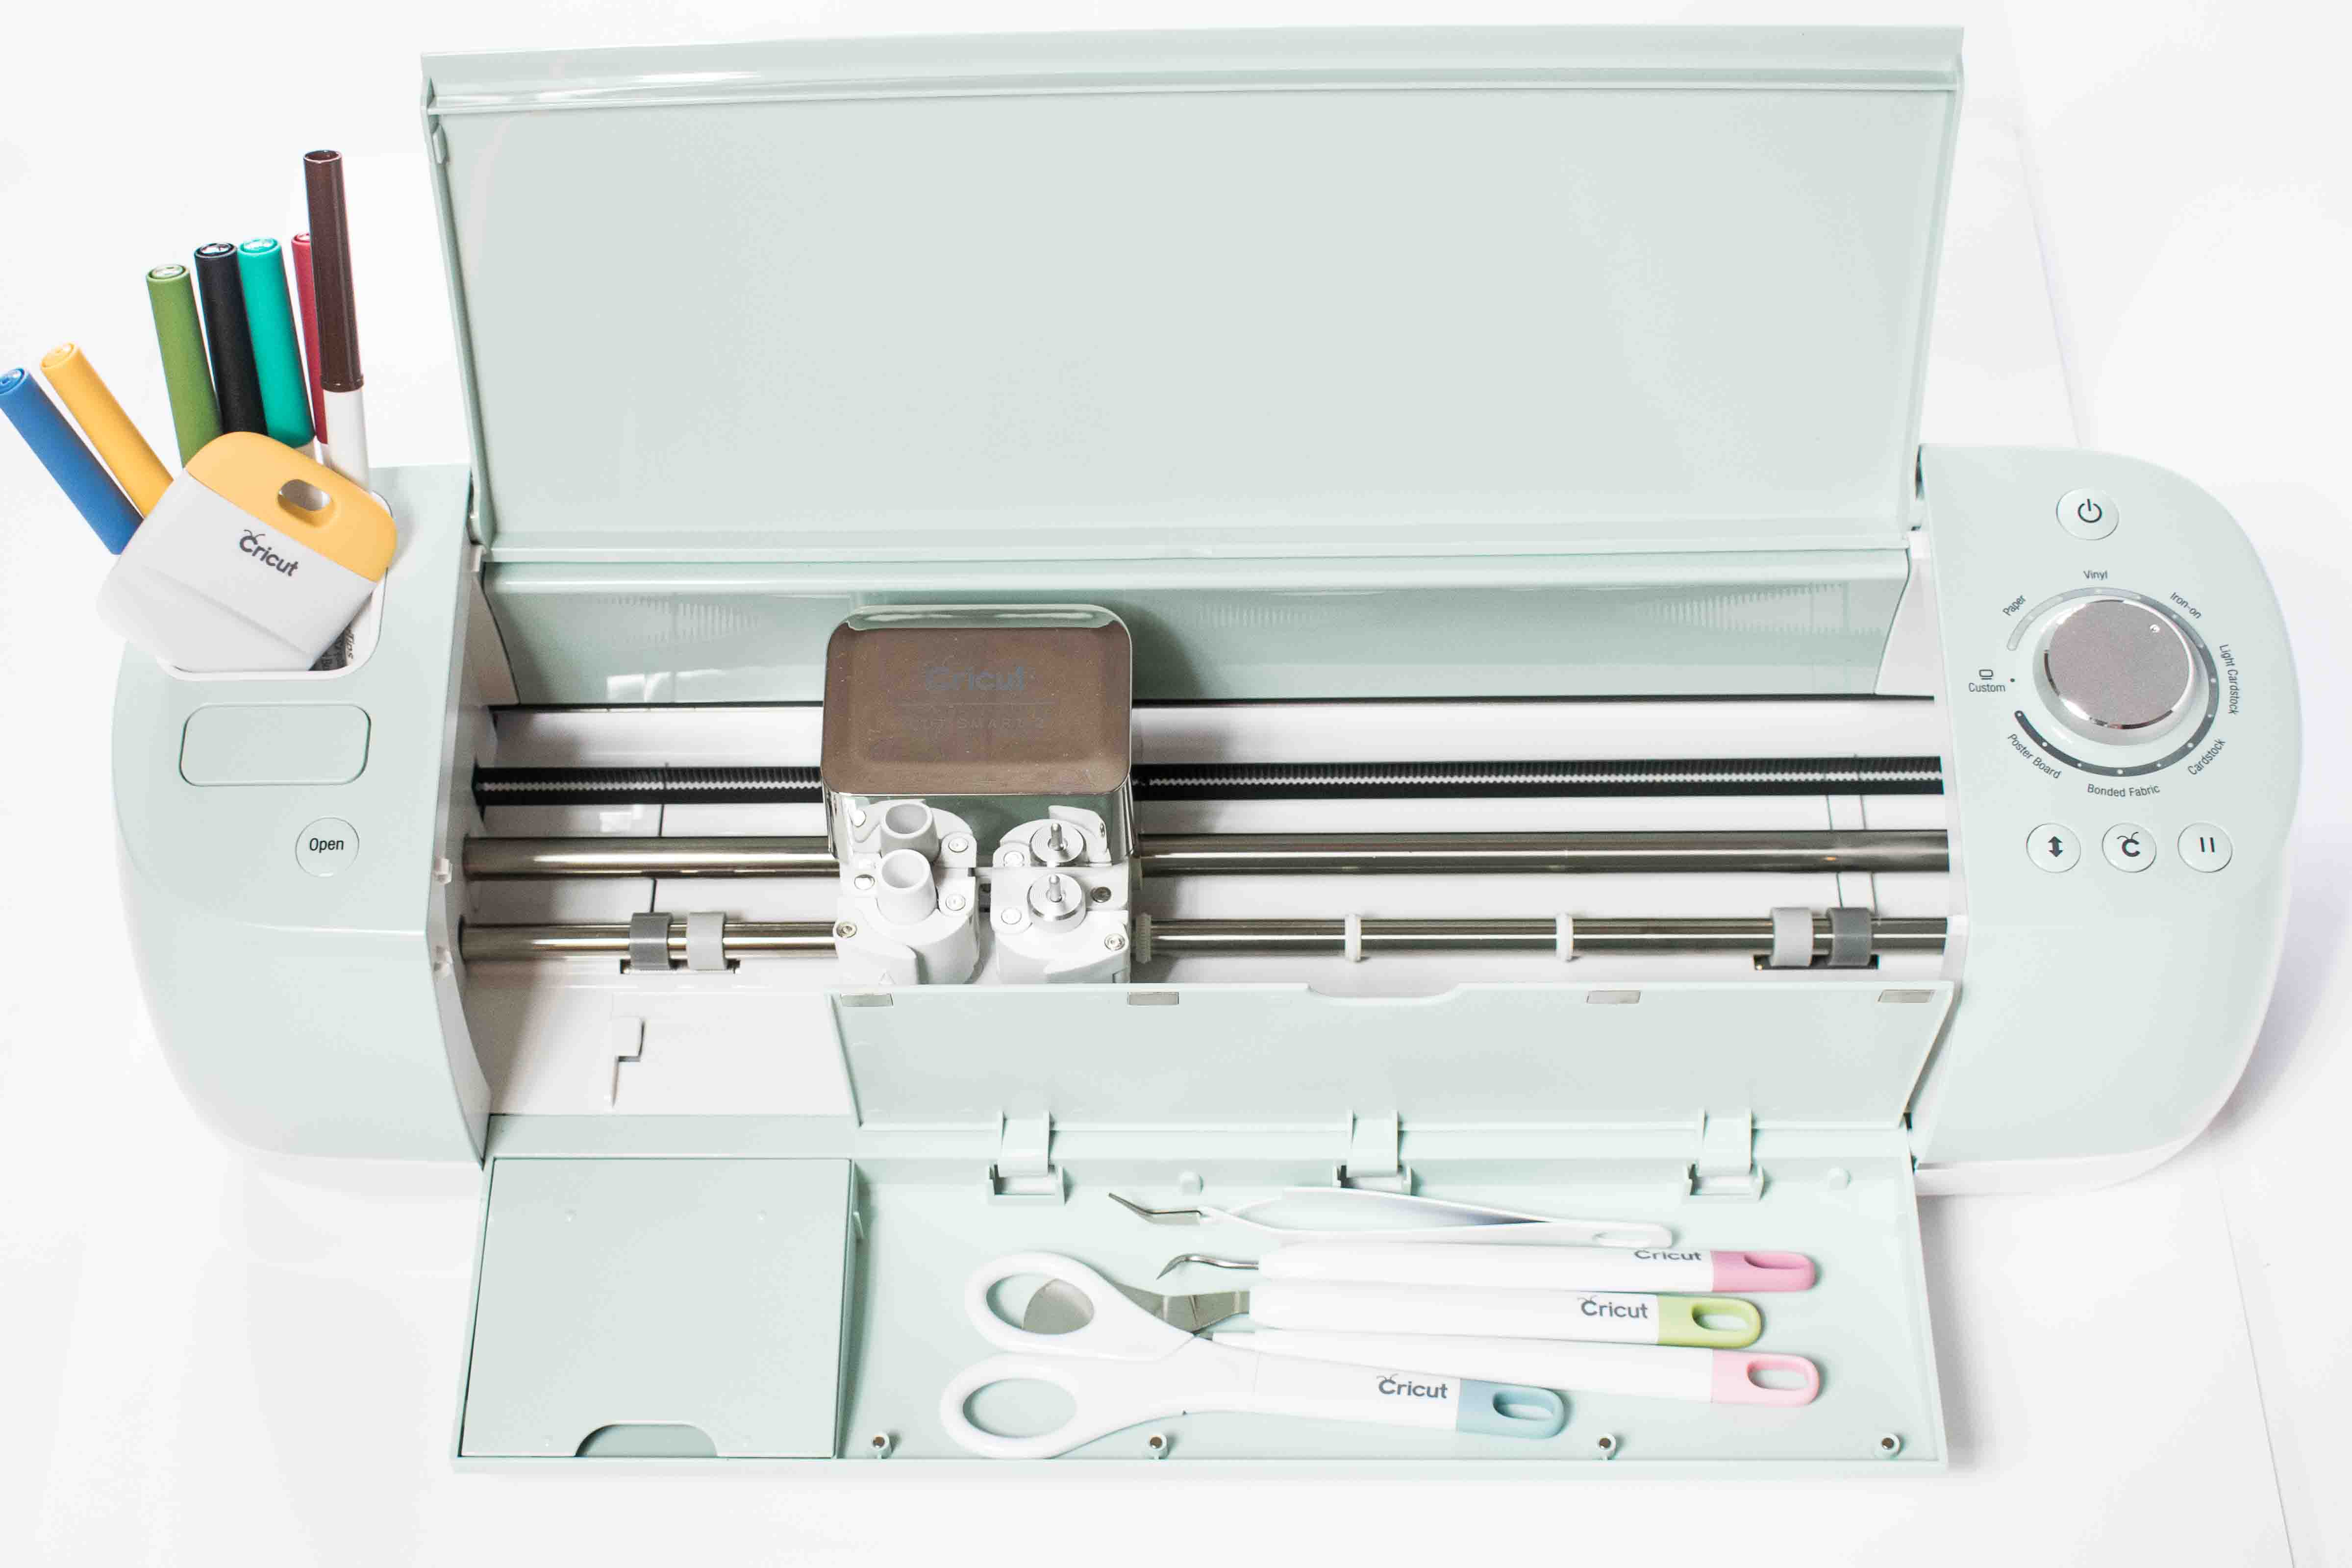 Cricut Explore Air 2 Open Displaying Tools and Markers